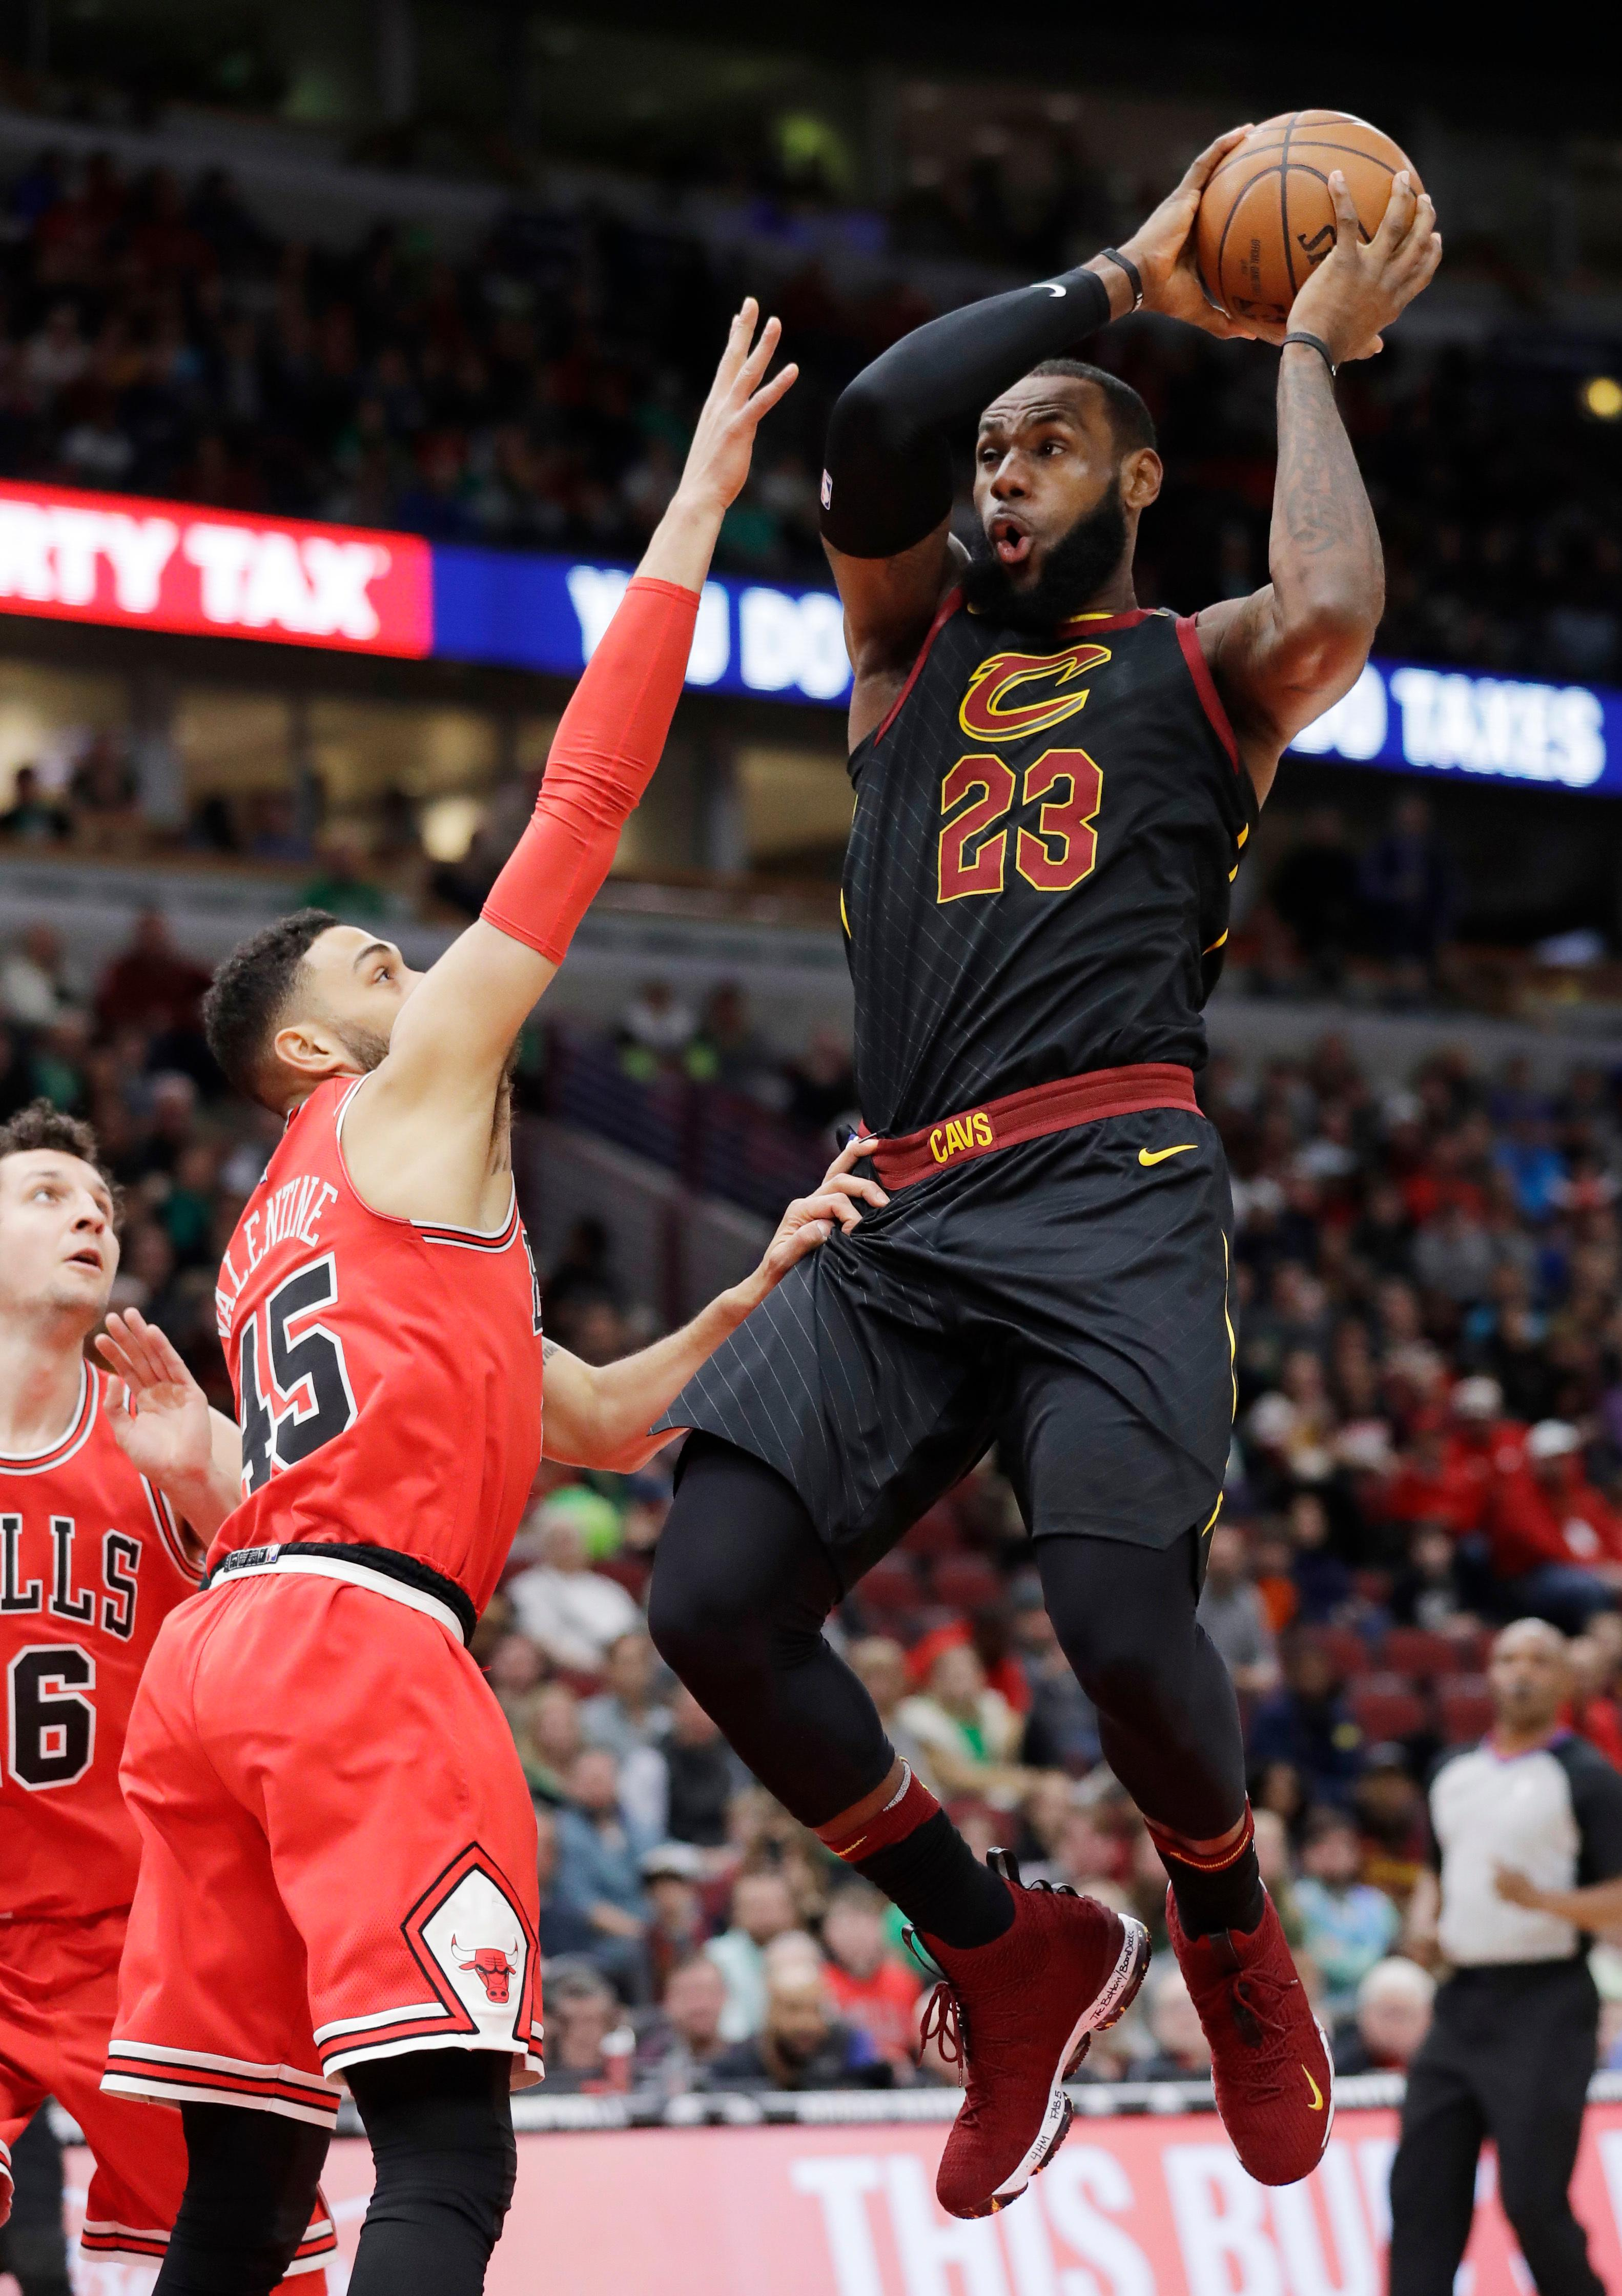 Cleveland Cavaliers forward LeBron James, right, drives to the basket against Chicago Bulls guard Denzel Valentine, center, and forward Paul Zipser during the first half of an NBA basketball game Saturday, March 17, 2018, in Chicago. (AP Photo/Nam Y. Huh)